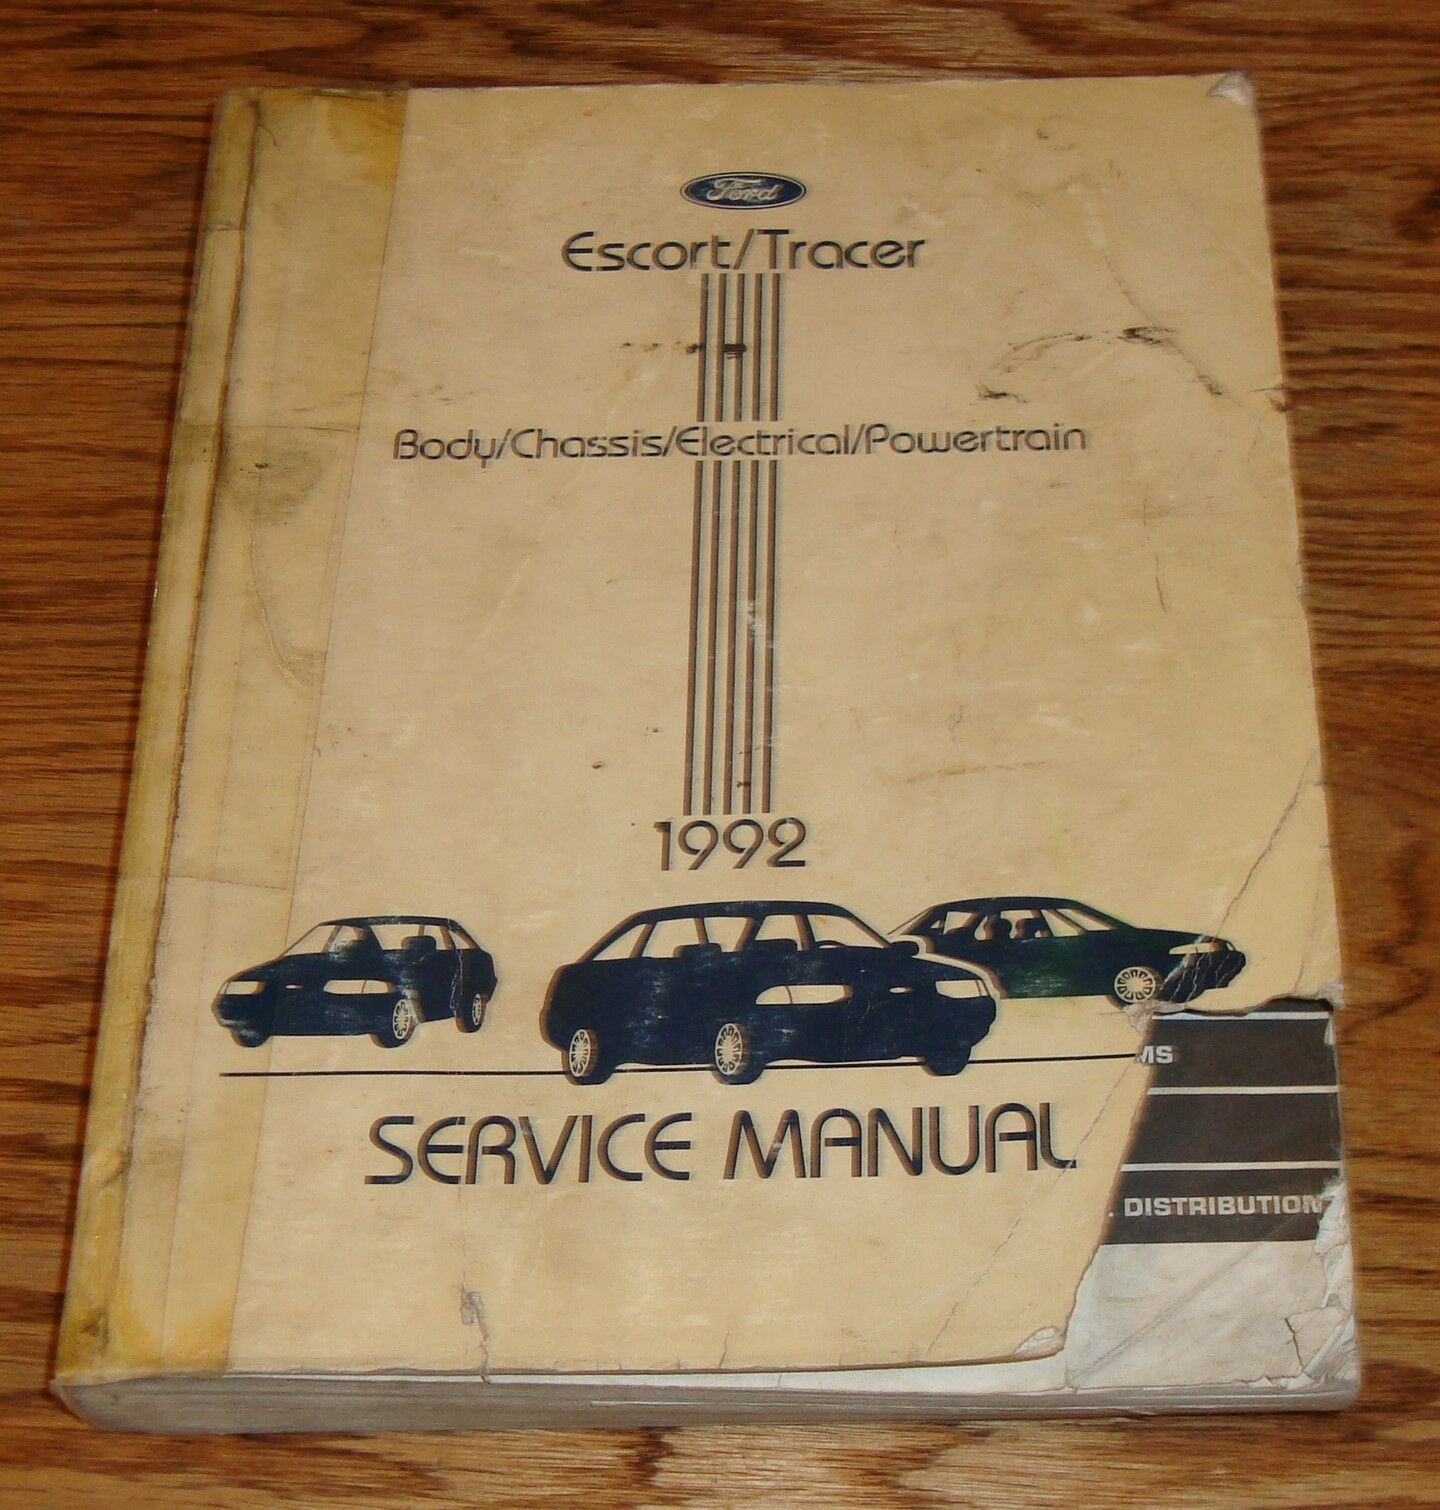 1991 Mercury Tracer Diagram Wiring Schematic Simple Guide About 1946 Willys 1992 Ford Escort Shop Service Manual 92 6 14 Rh Picclick Co Uk